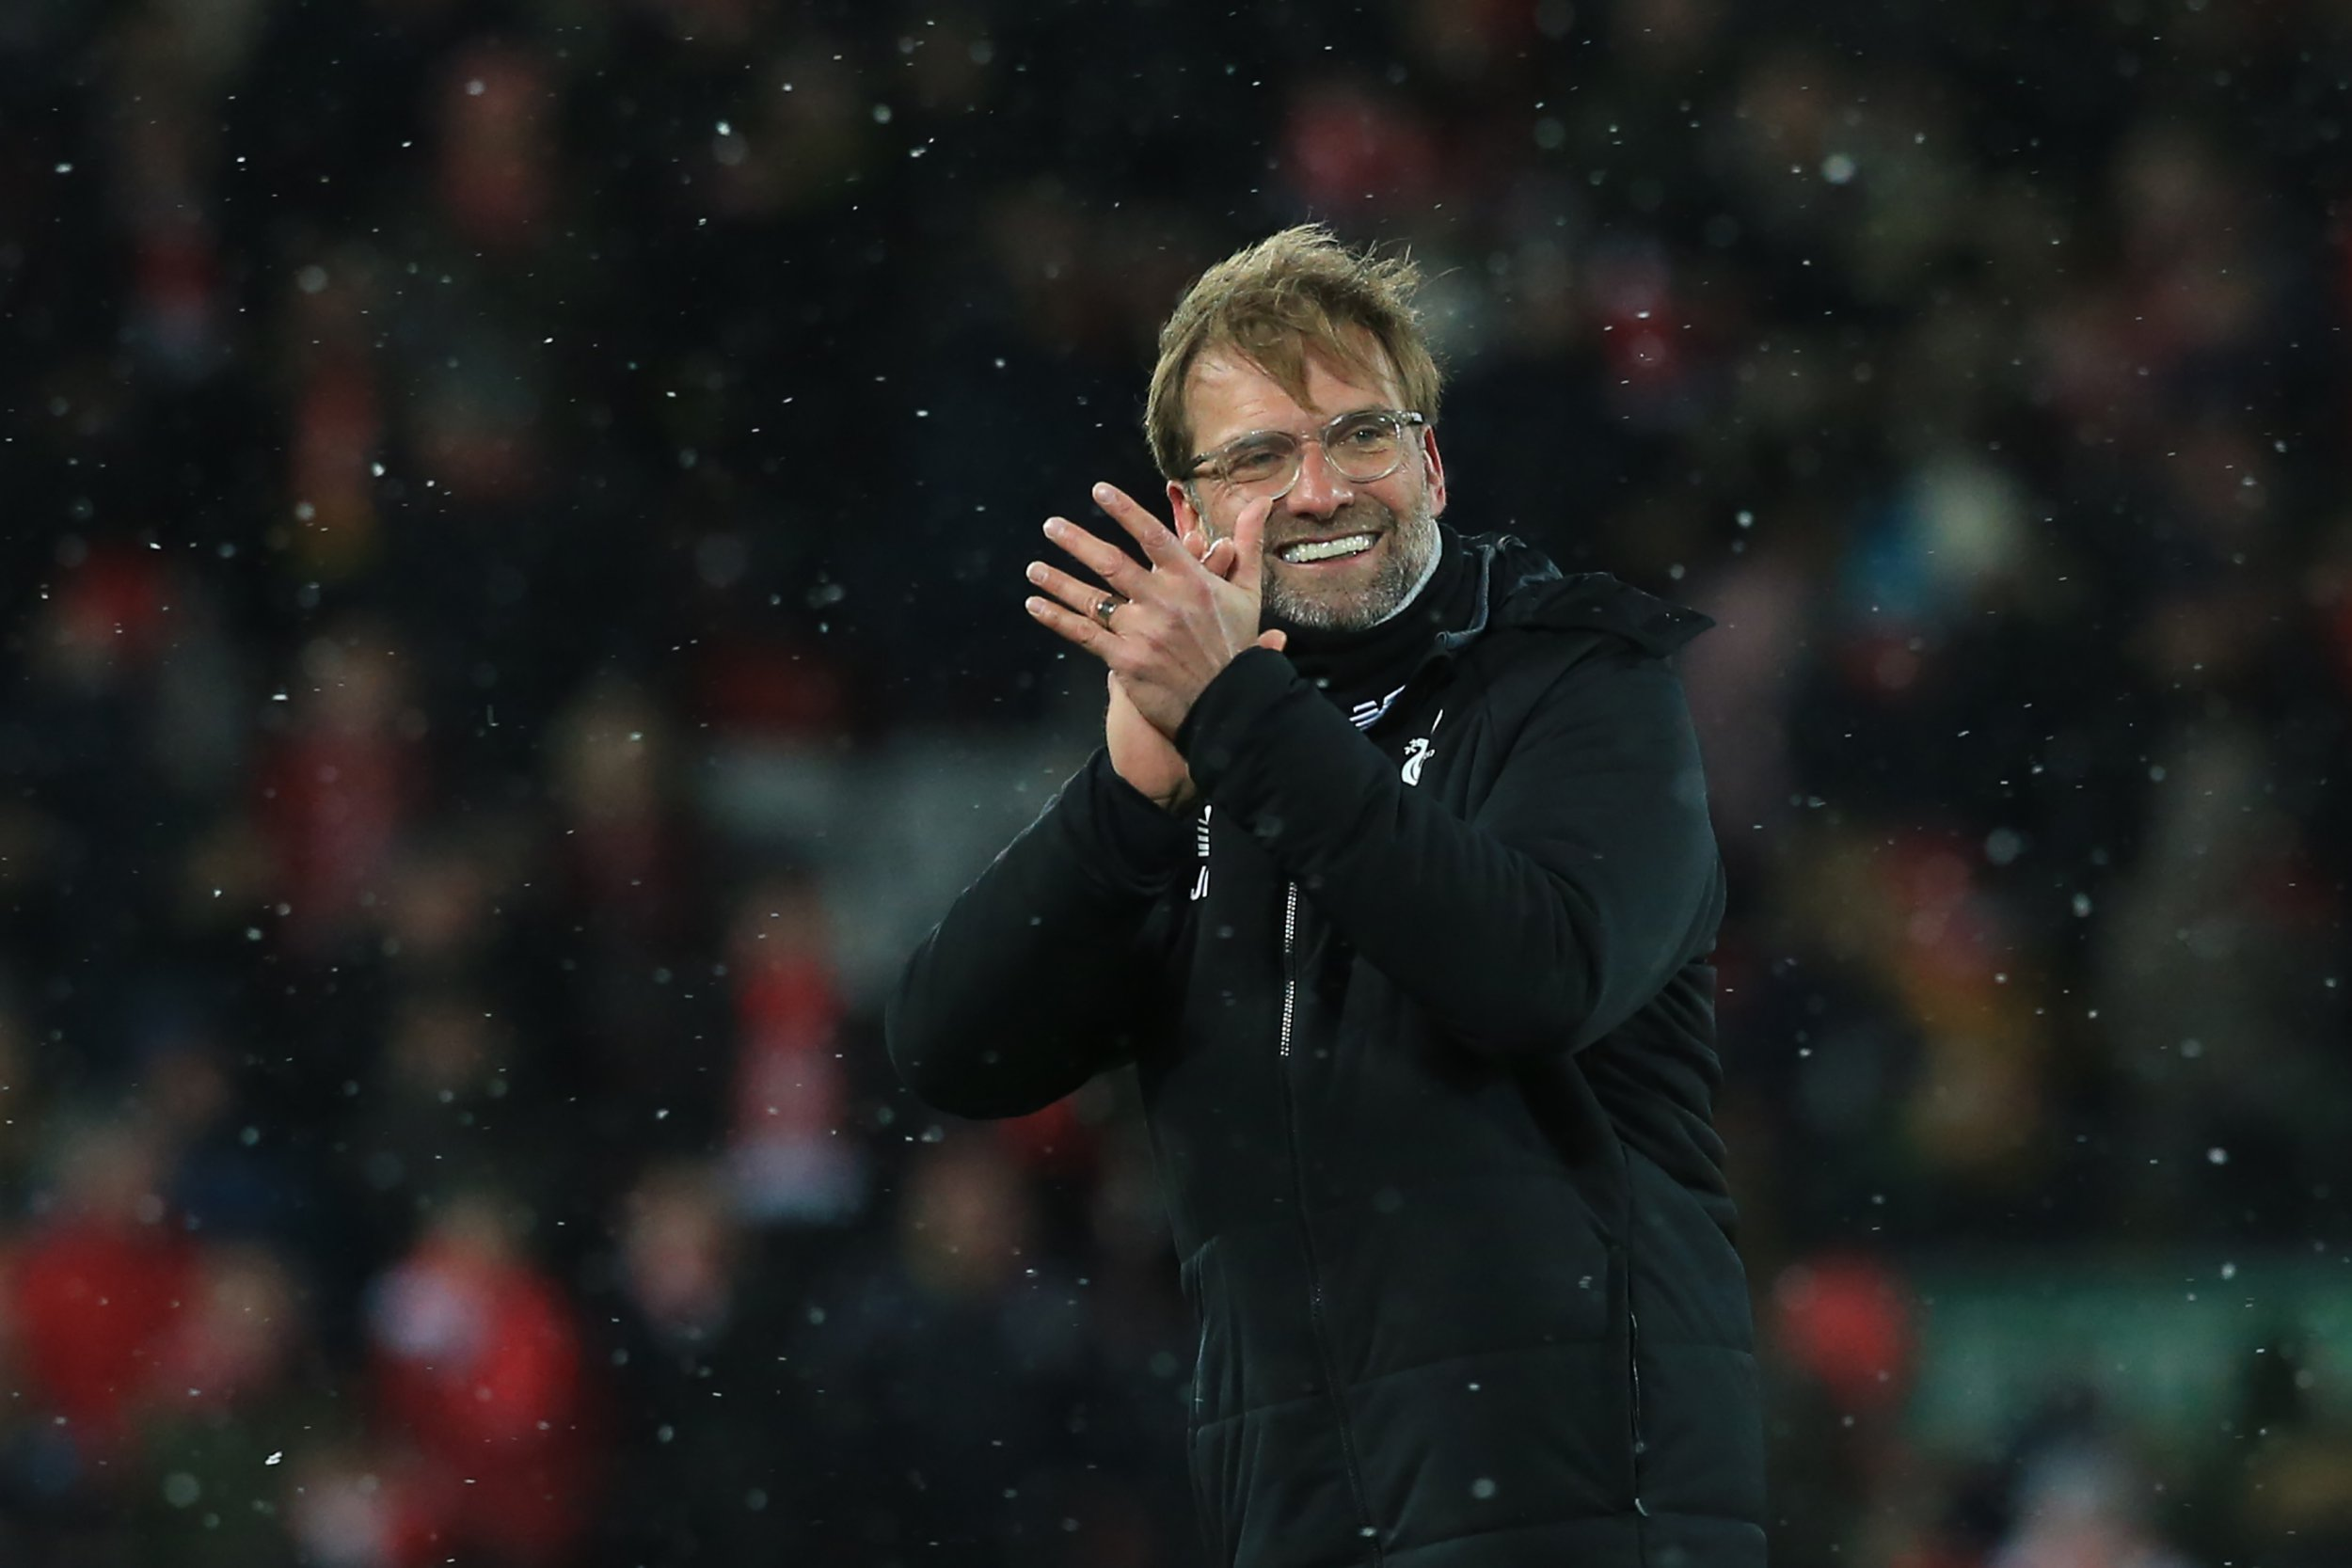 Liverpool's German manager Jurgen Klopp gestures after the English Premier League football match between Liverpool and Watford at Anfield in Liverpool, north west England on March 17, 2018. / AFP PHOTO / Lindsey PARNABY / RESTRICTED TO EDITORIAL USE. No use with unauthorized audio, video, data, fixture lists, club/league logos or 'live' services. Online in-match use limited to 75 images, no video emulation. No use in betting, games or single club/league/player publications. / LINDSEY PARNABY/AFP/Getty Images